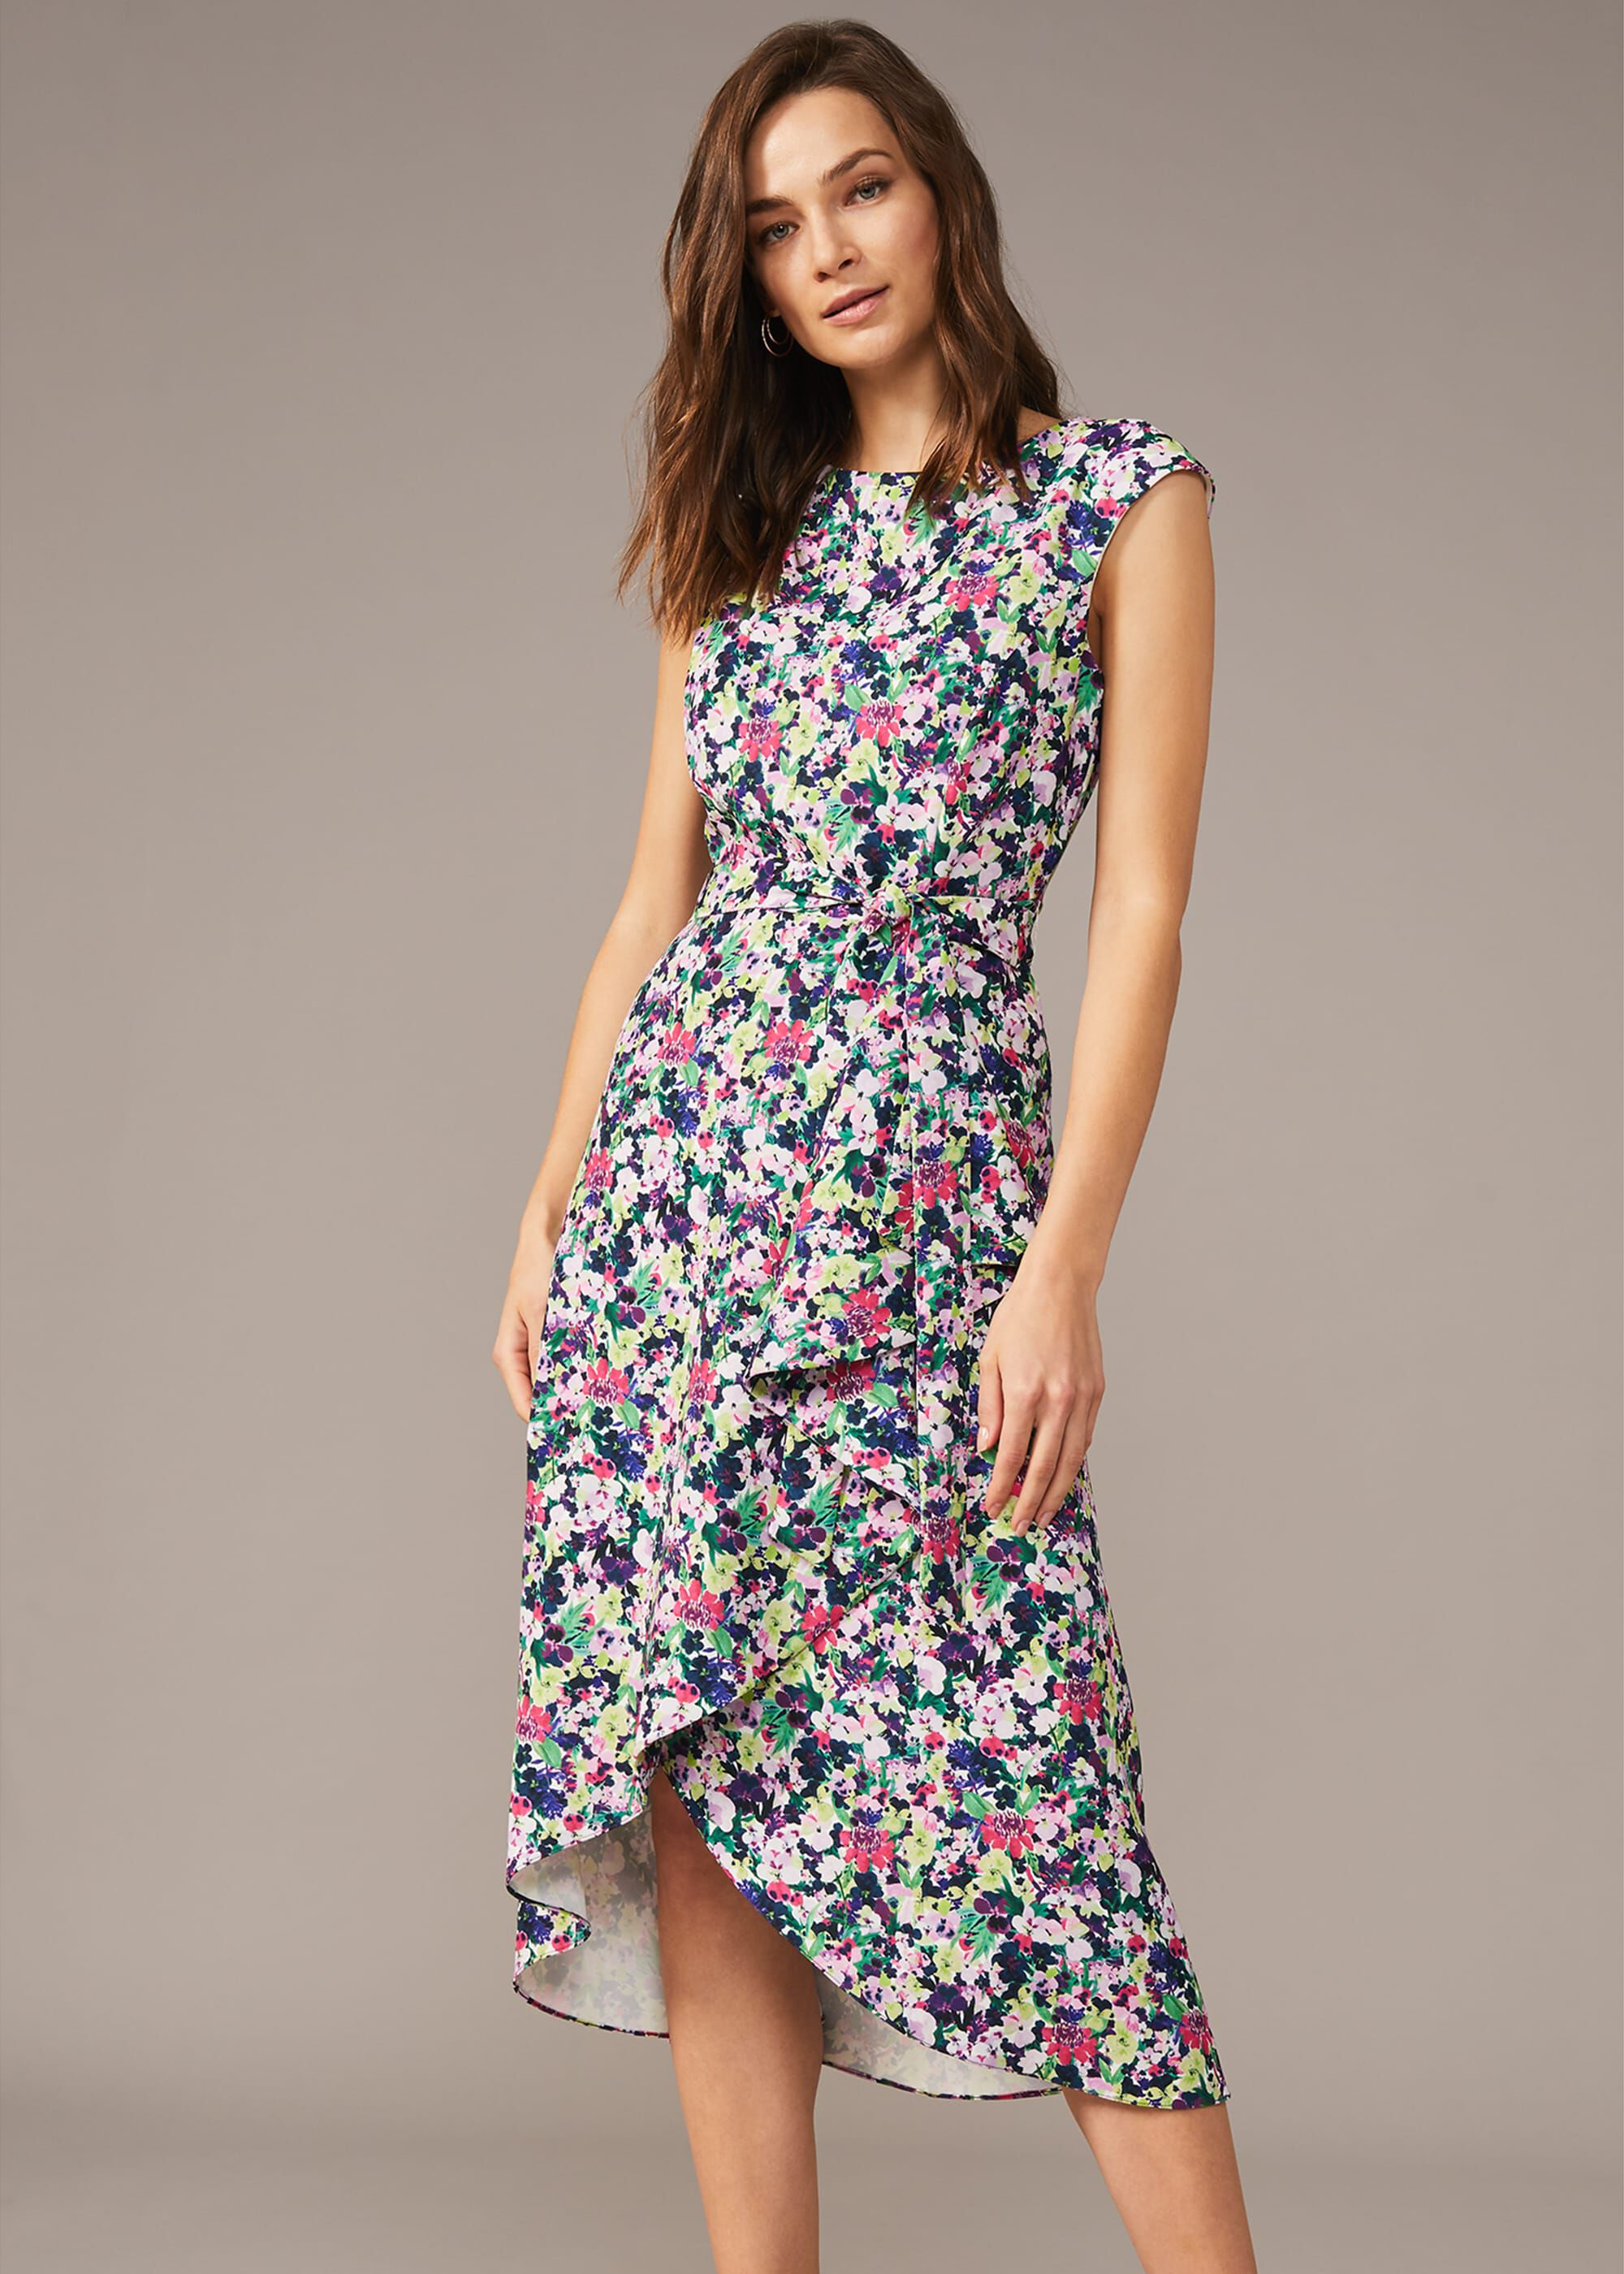 Phase Eight Arya Floral Frill Hem Dress, Multicoloured, Fit & Flare, Occasion Dress